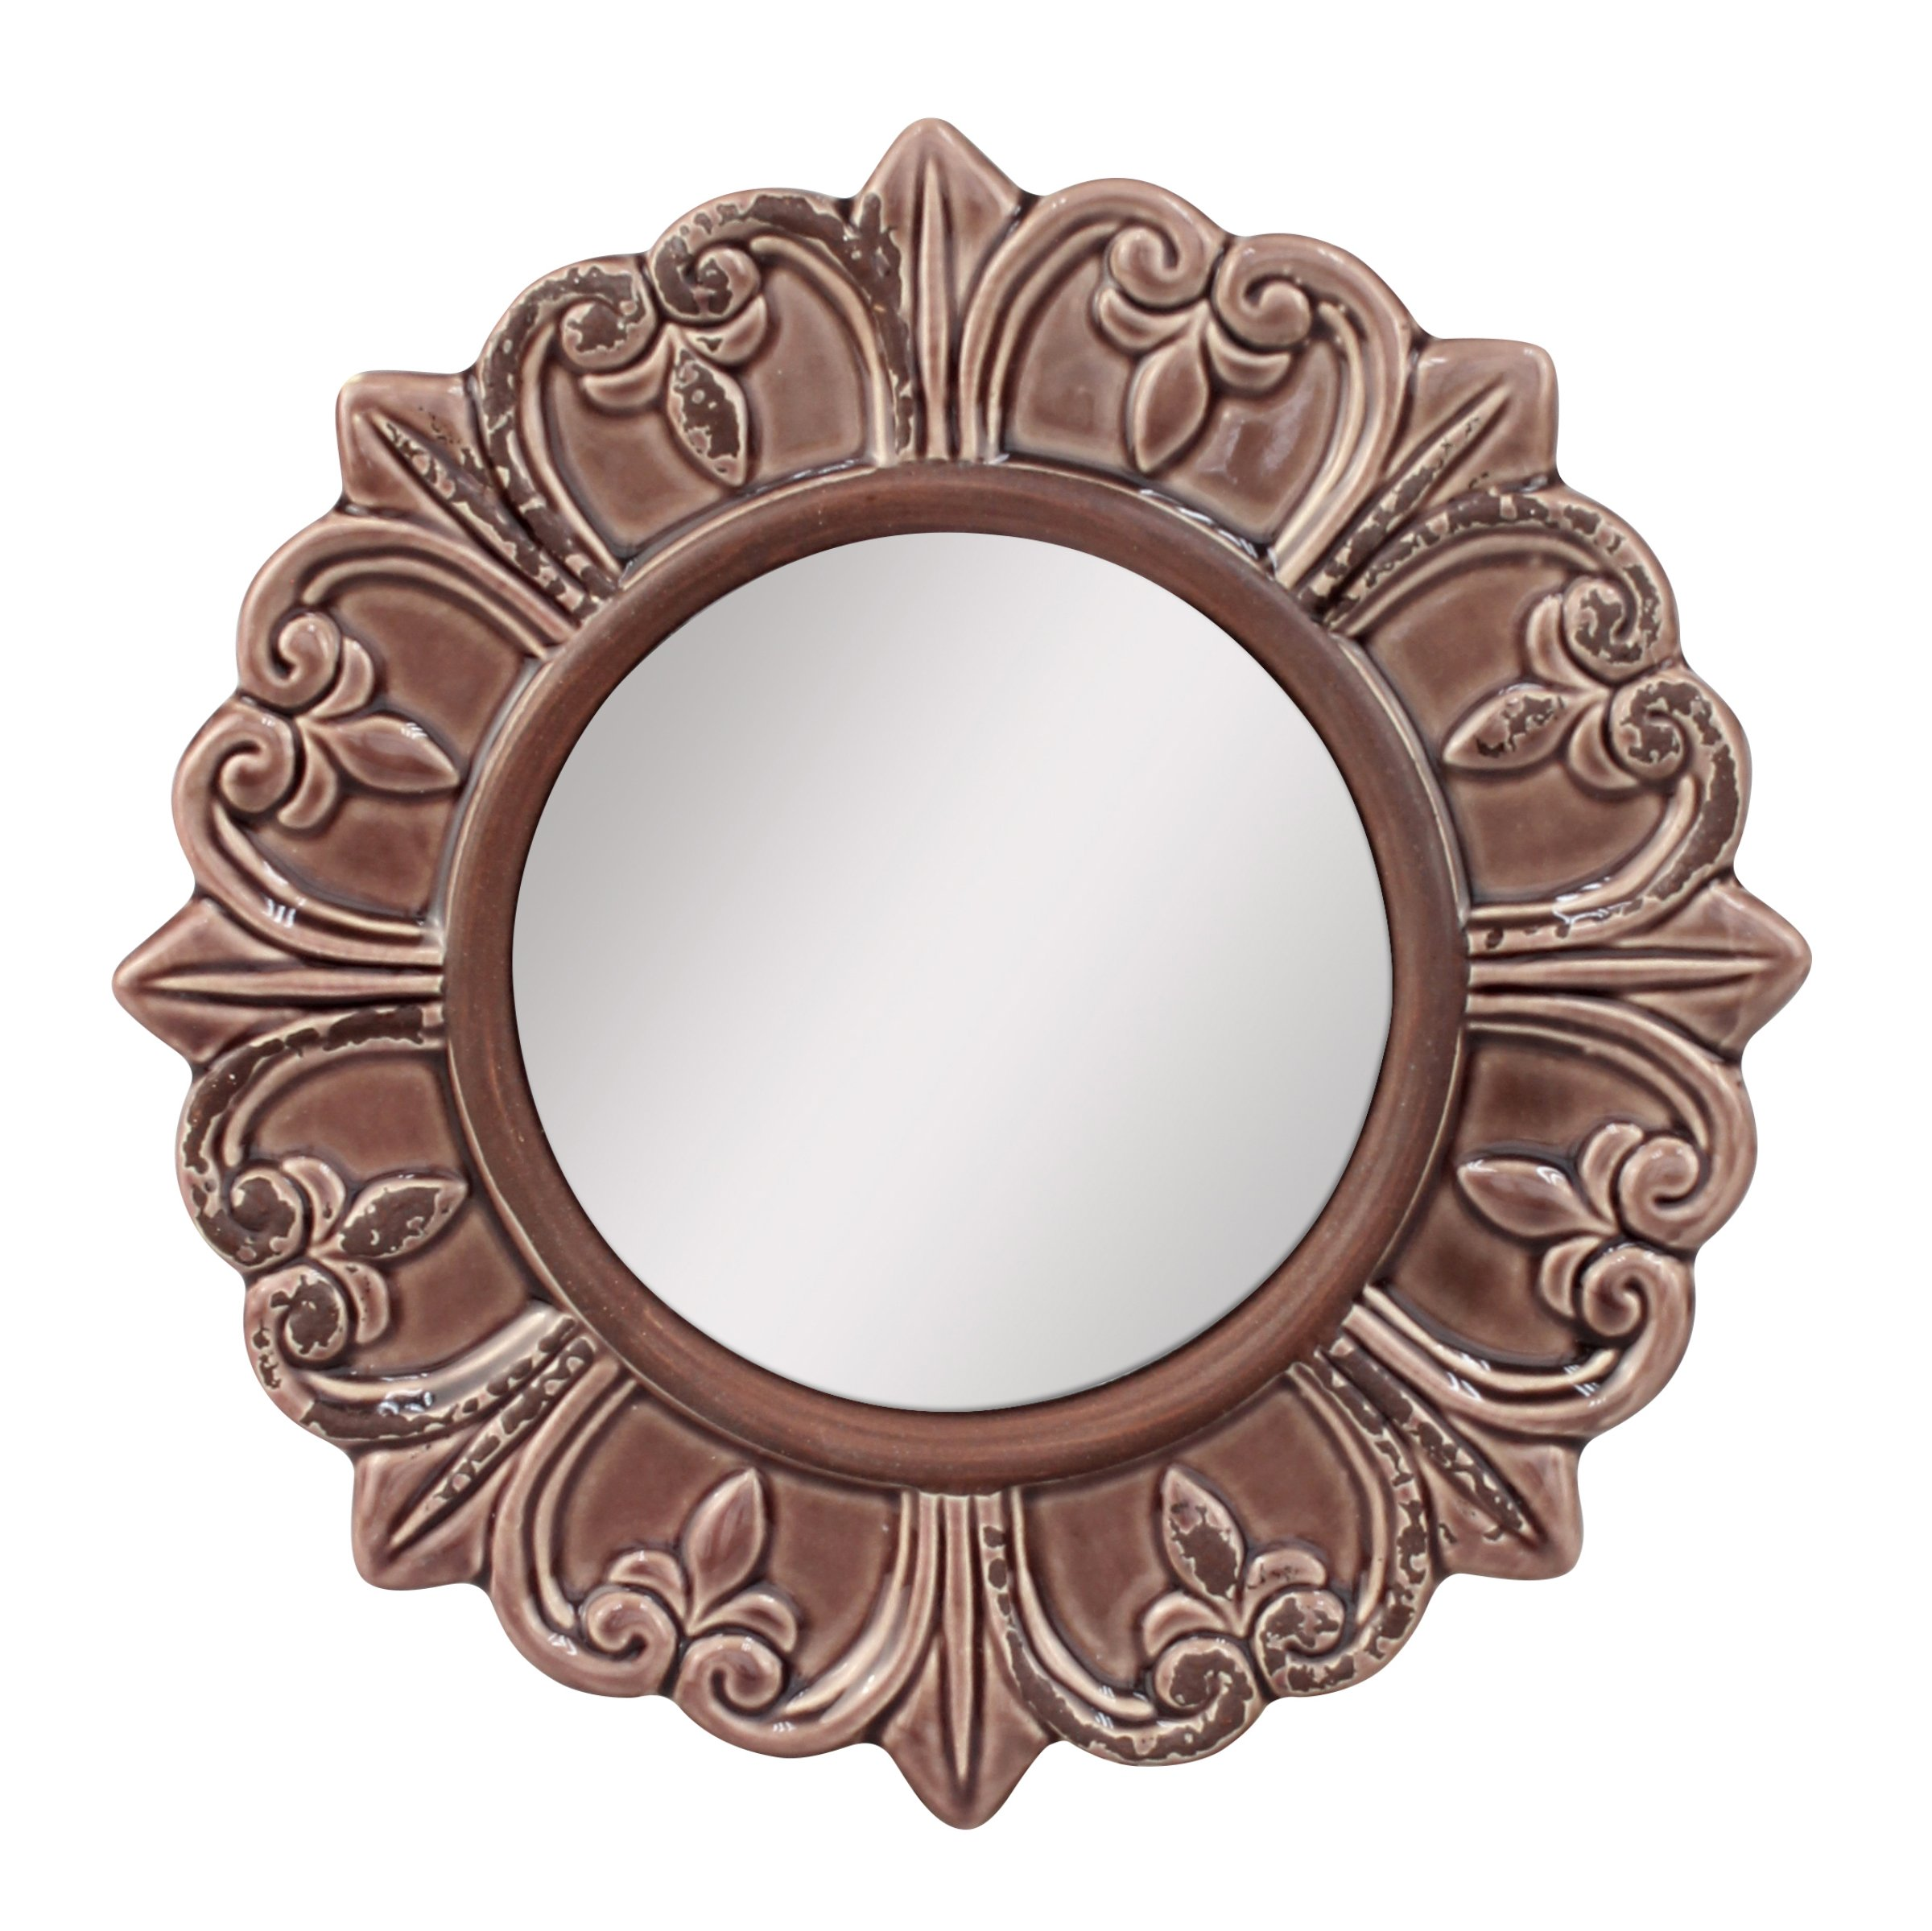 Stonebriar Decorative Round Burnt Umber Ceramic Wall Mirror, Elegant Home Décor for Living Room, Kitchen, Bedroom, or Hallway